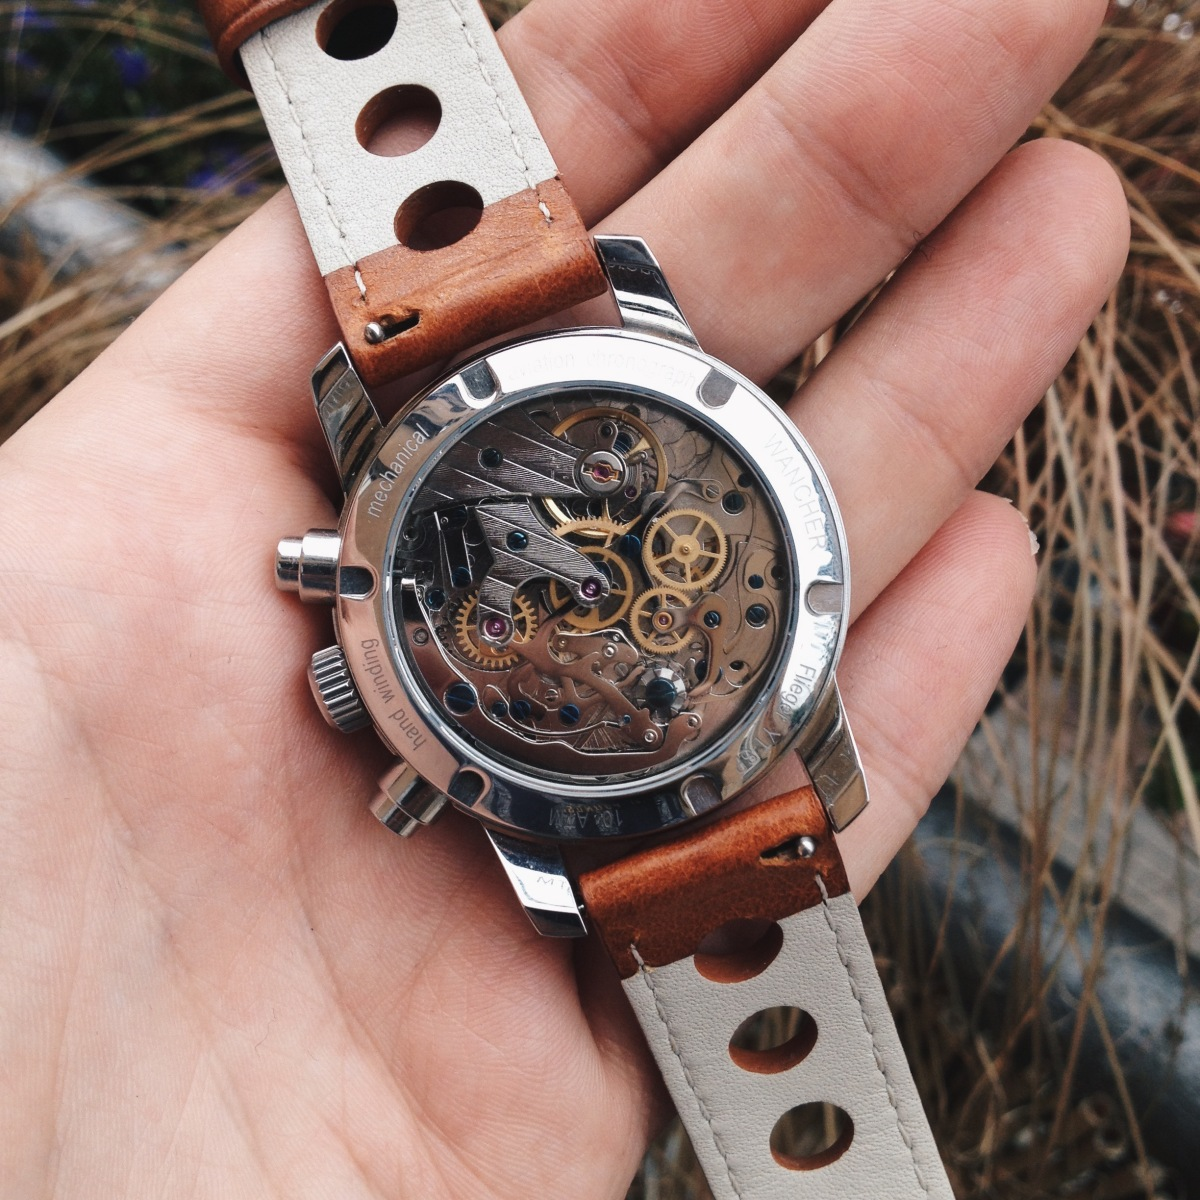 Seagull ST19 Chronograph movement (Review) + Brief History ...